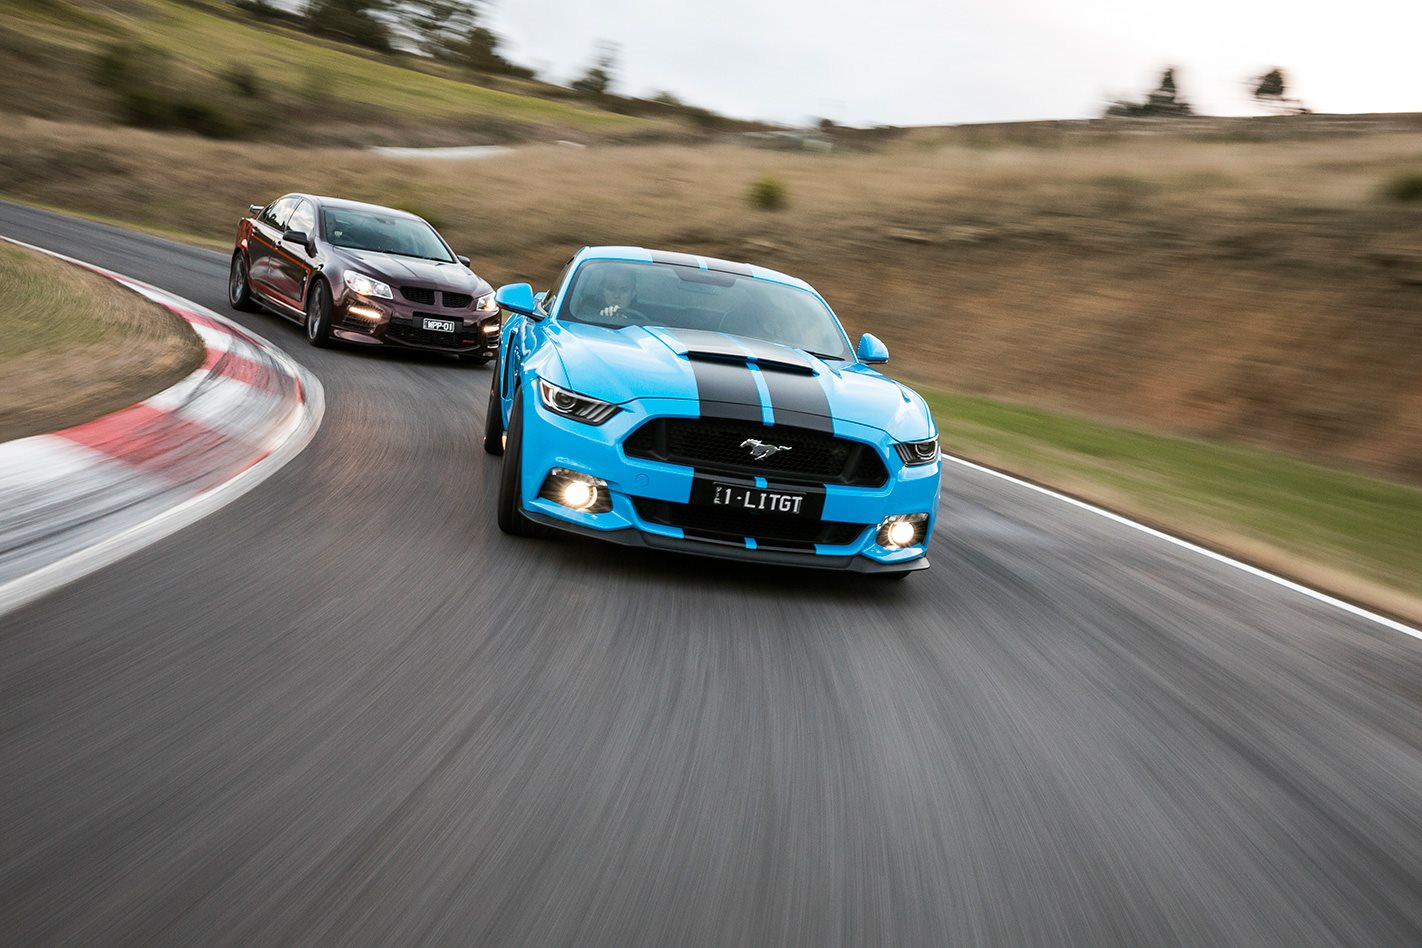 2017 Herrod Mustang GT vs 2017 Walkinshaw W557 steering